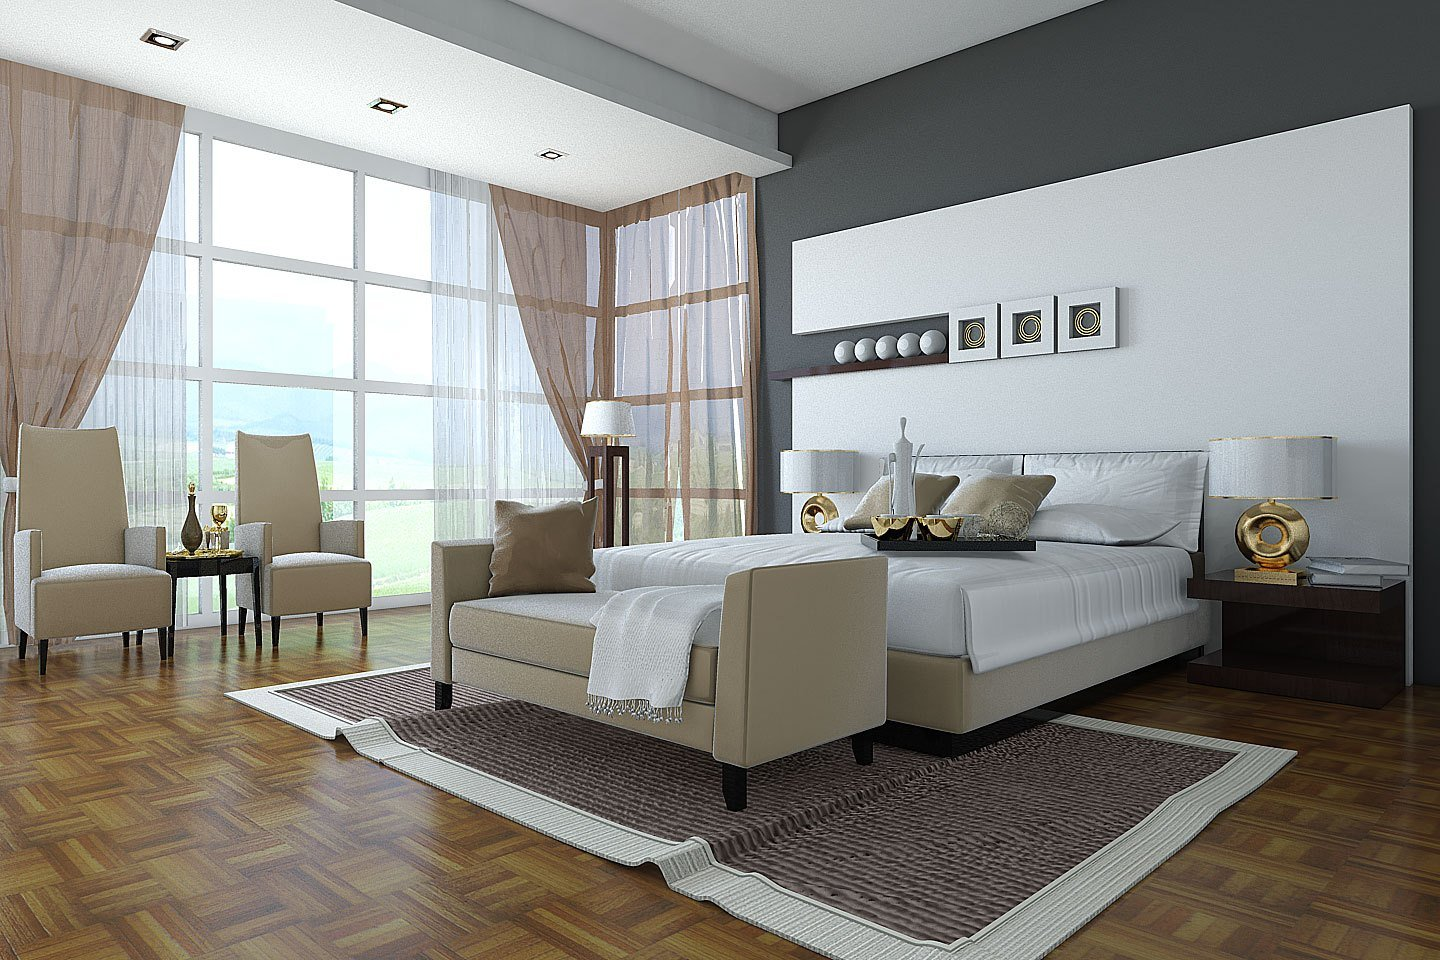 Best Redesigning The Bedroom With A Personal Theme With Pictures